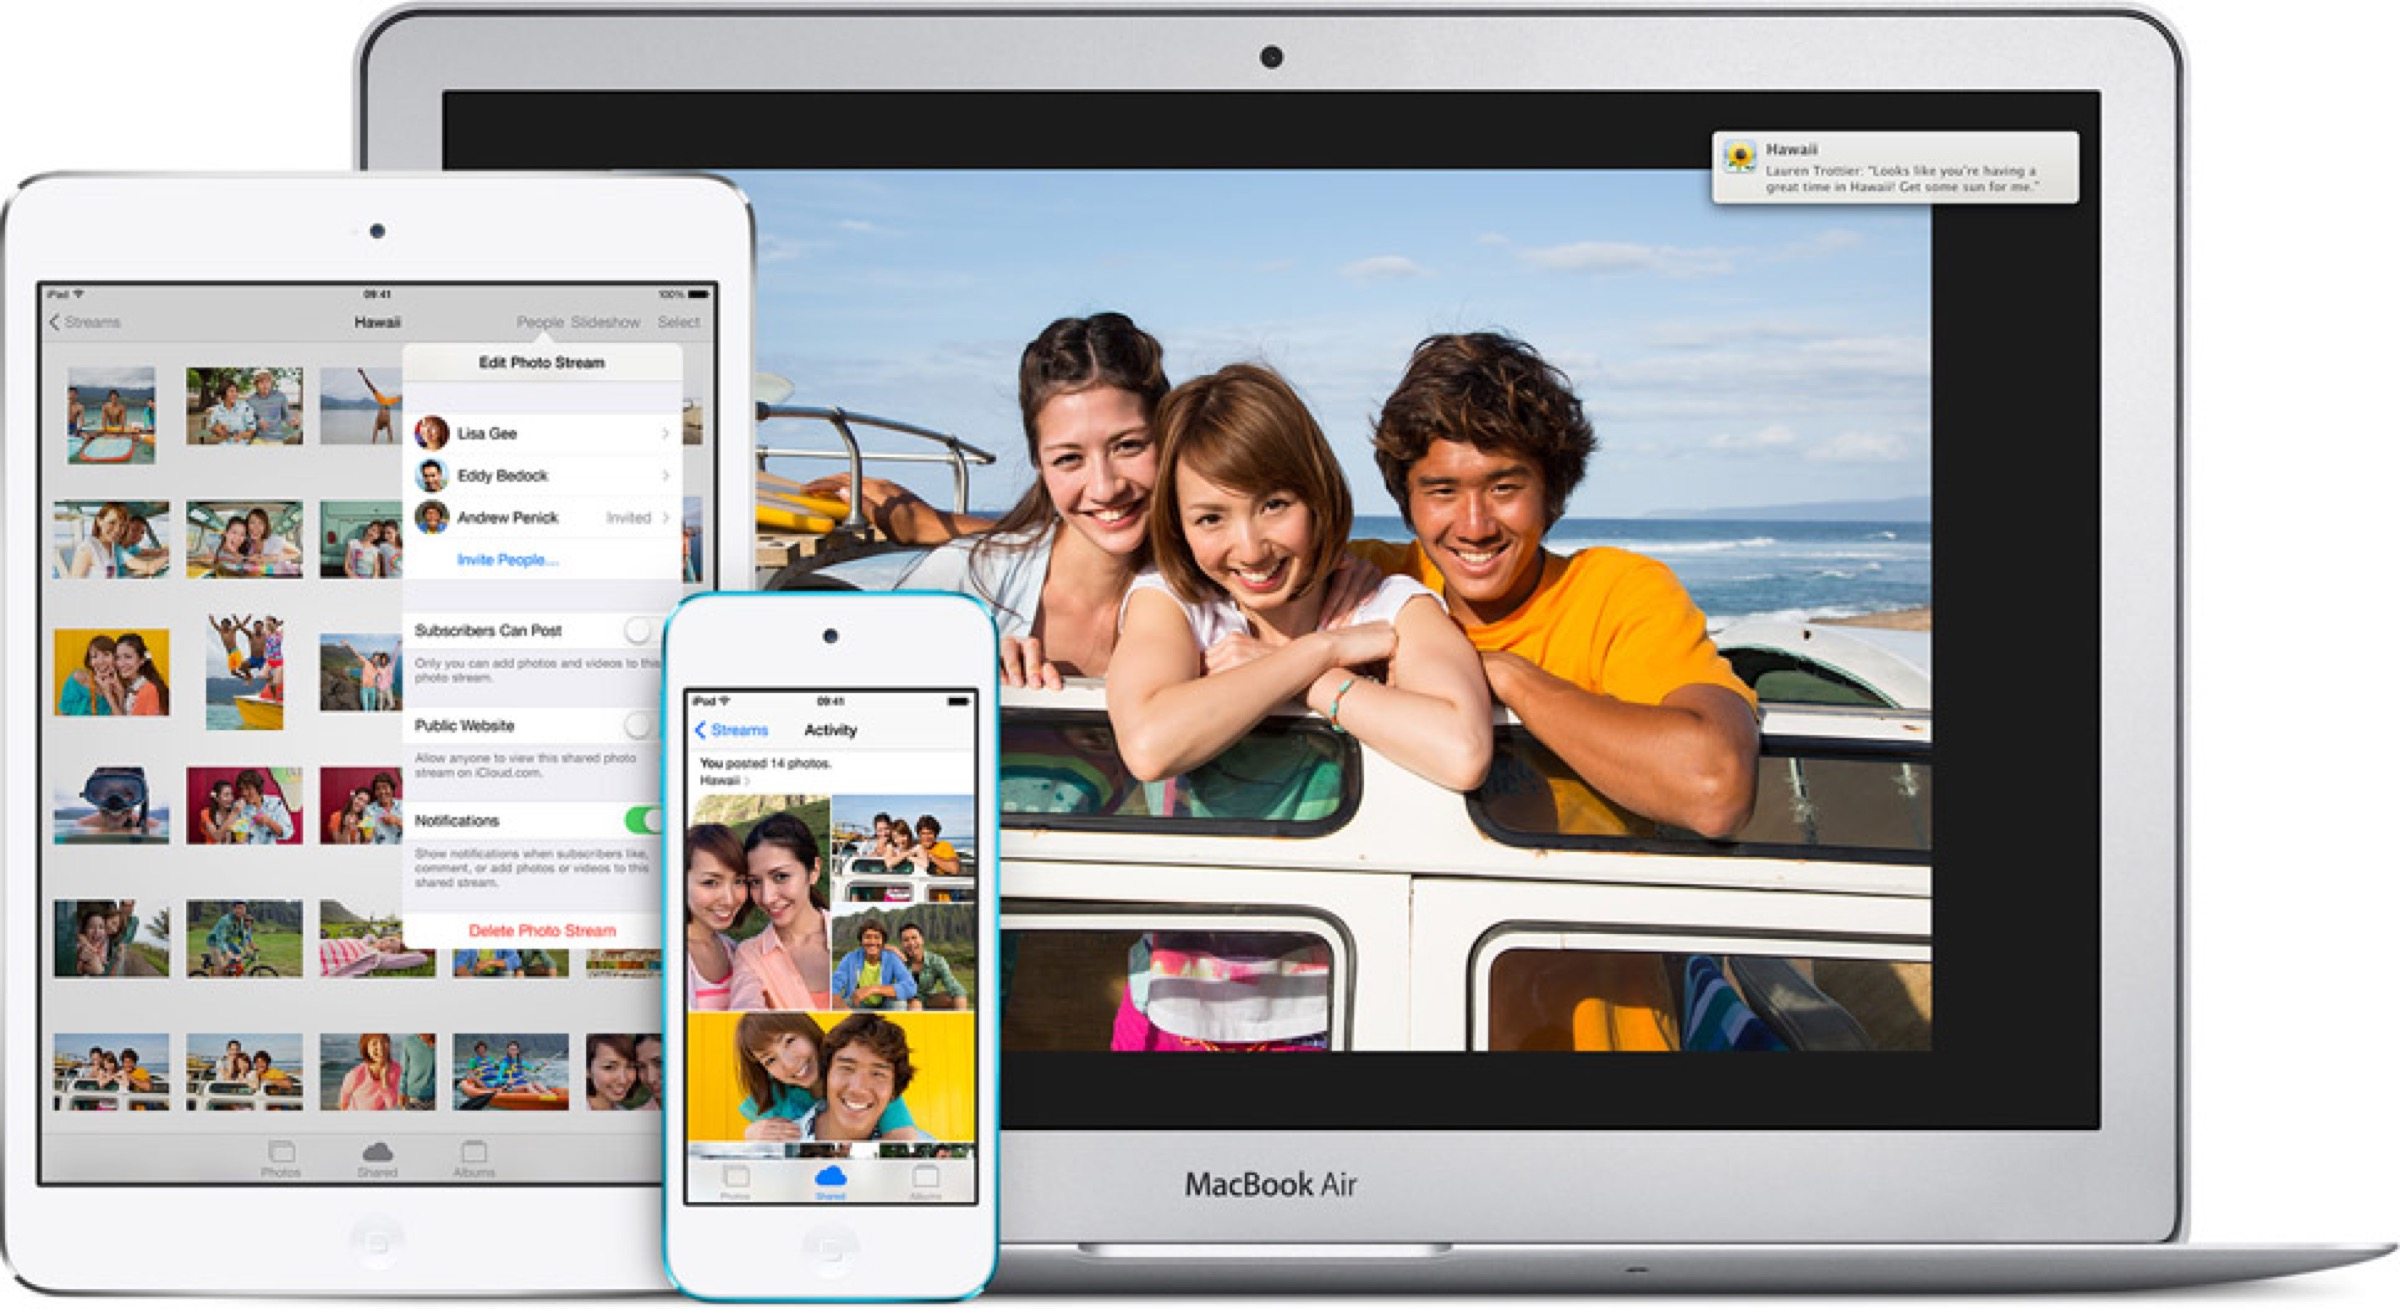 Stop texting photos and videos - there is a better way to share